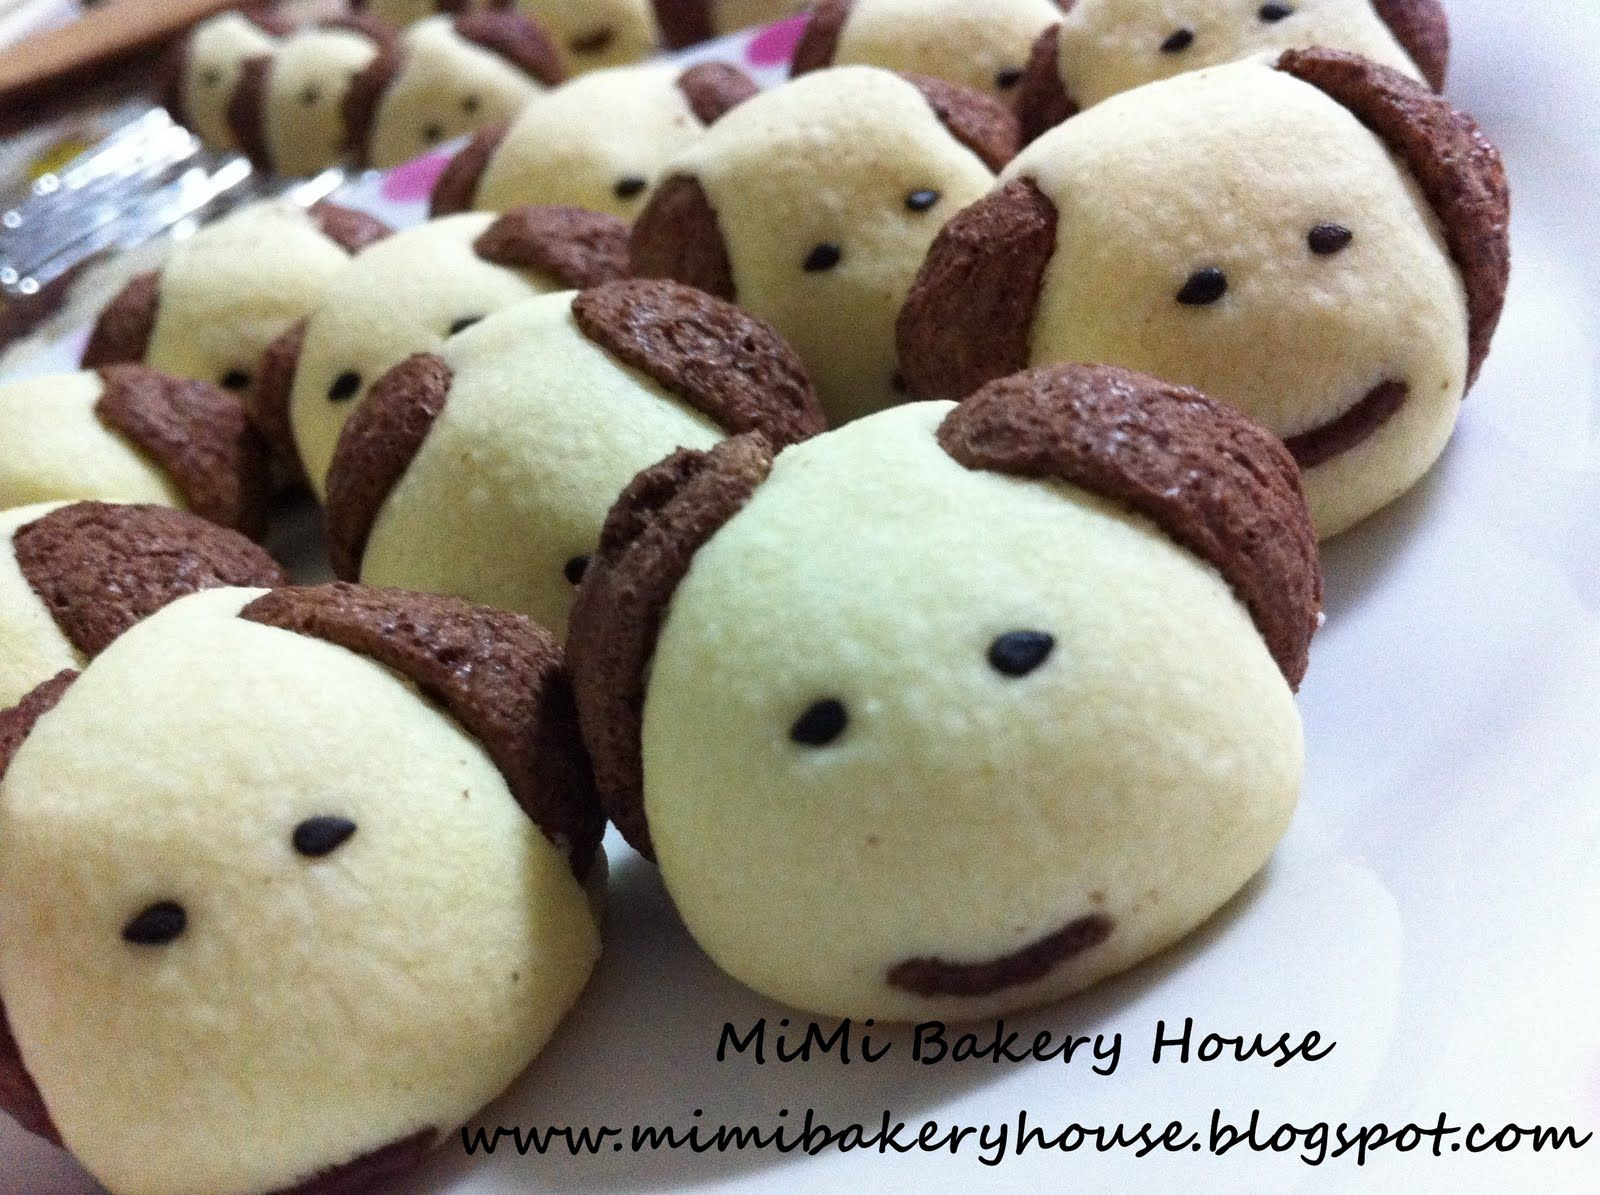 Doggy Cookies The Cutest Doggy Photos Cookies Cute Cookies